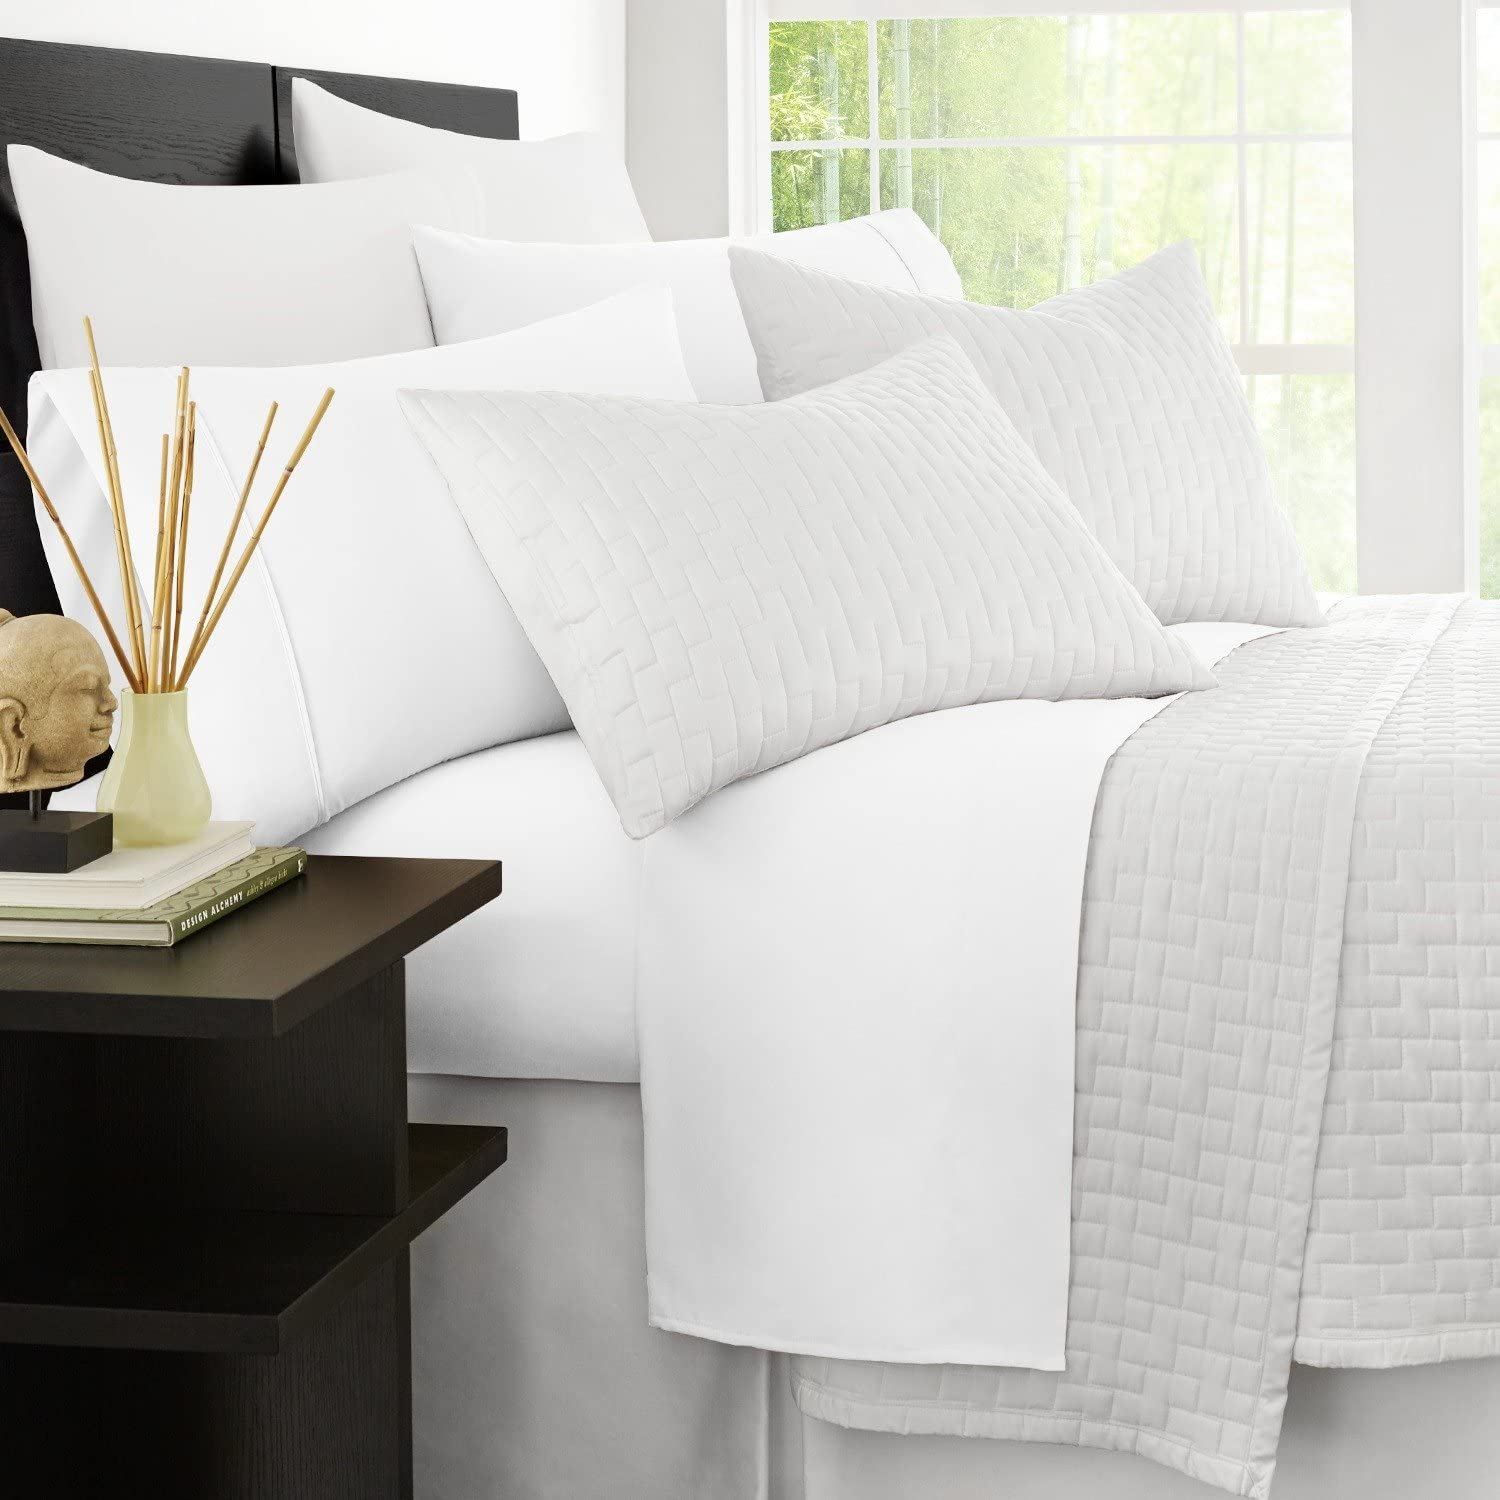 Zen Bamboo Luxury 1500 Series Bed Sheets - Eco-friendly, Hypoallergenic and Wrinkle Resistant Rayon Derived From Bamboo - 4-Piece - Queen - White